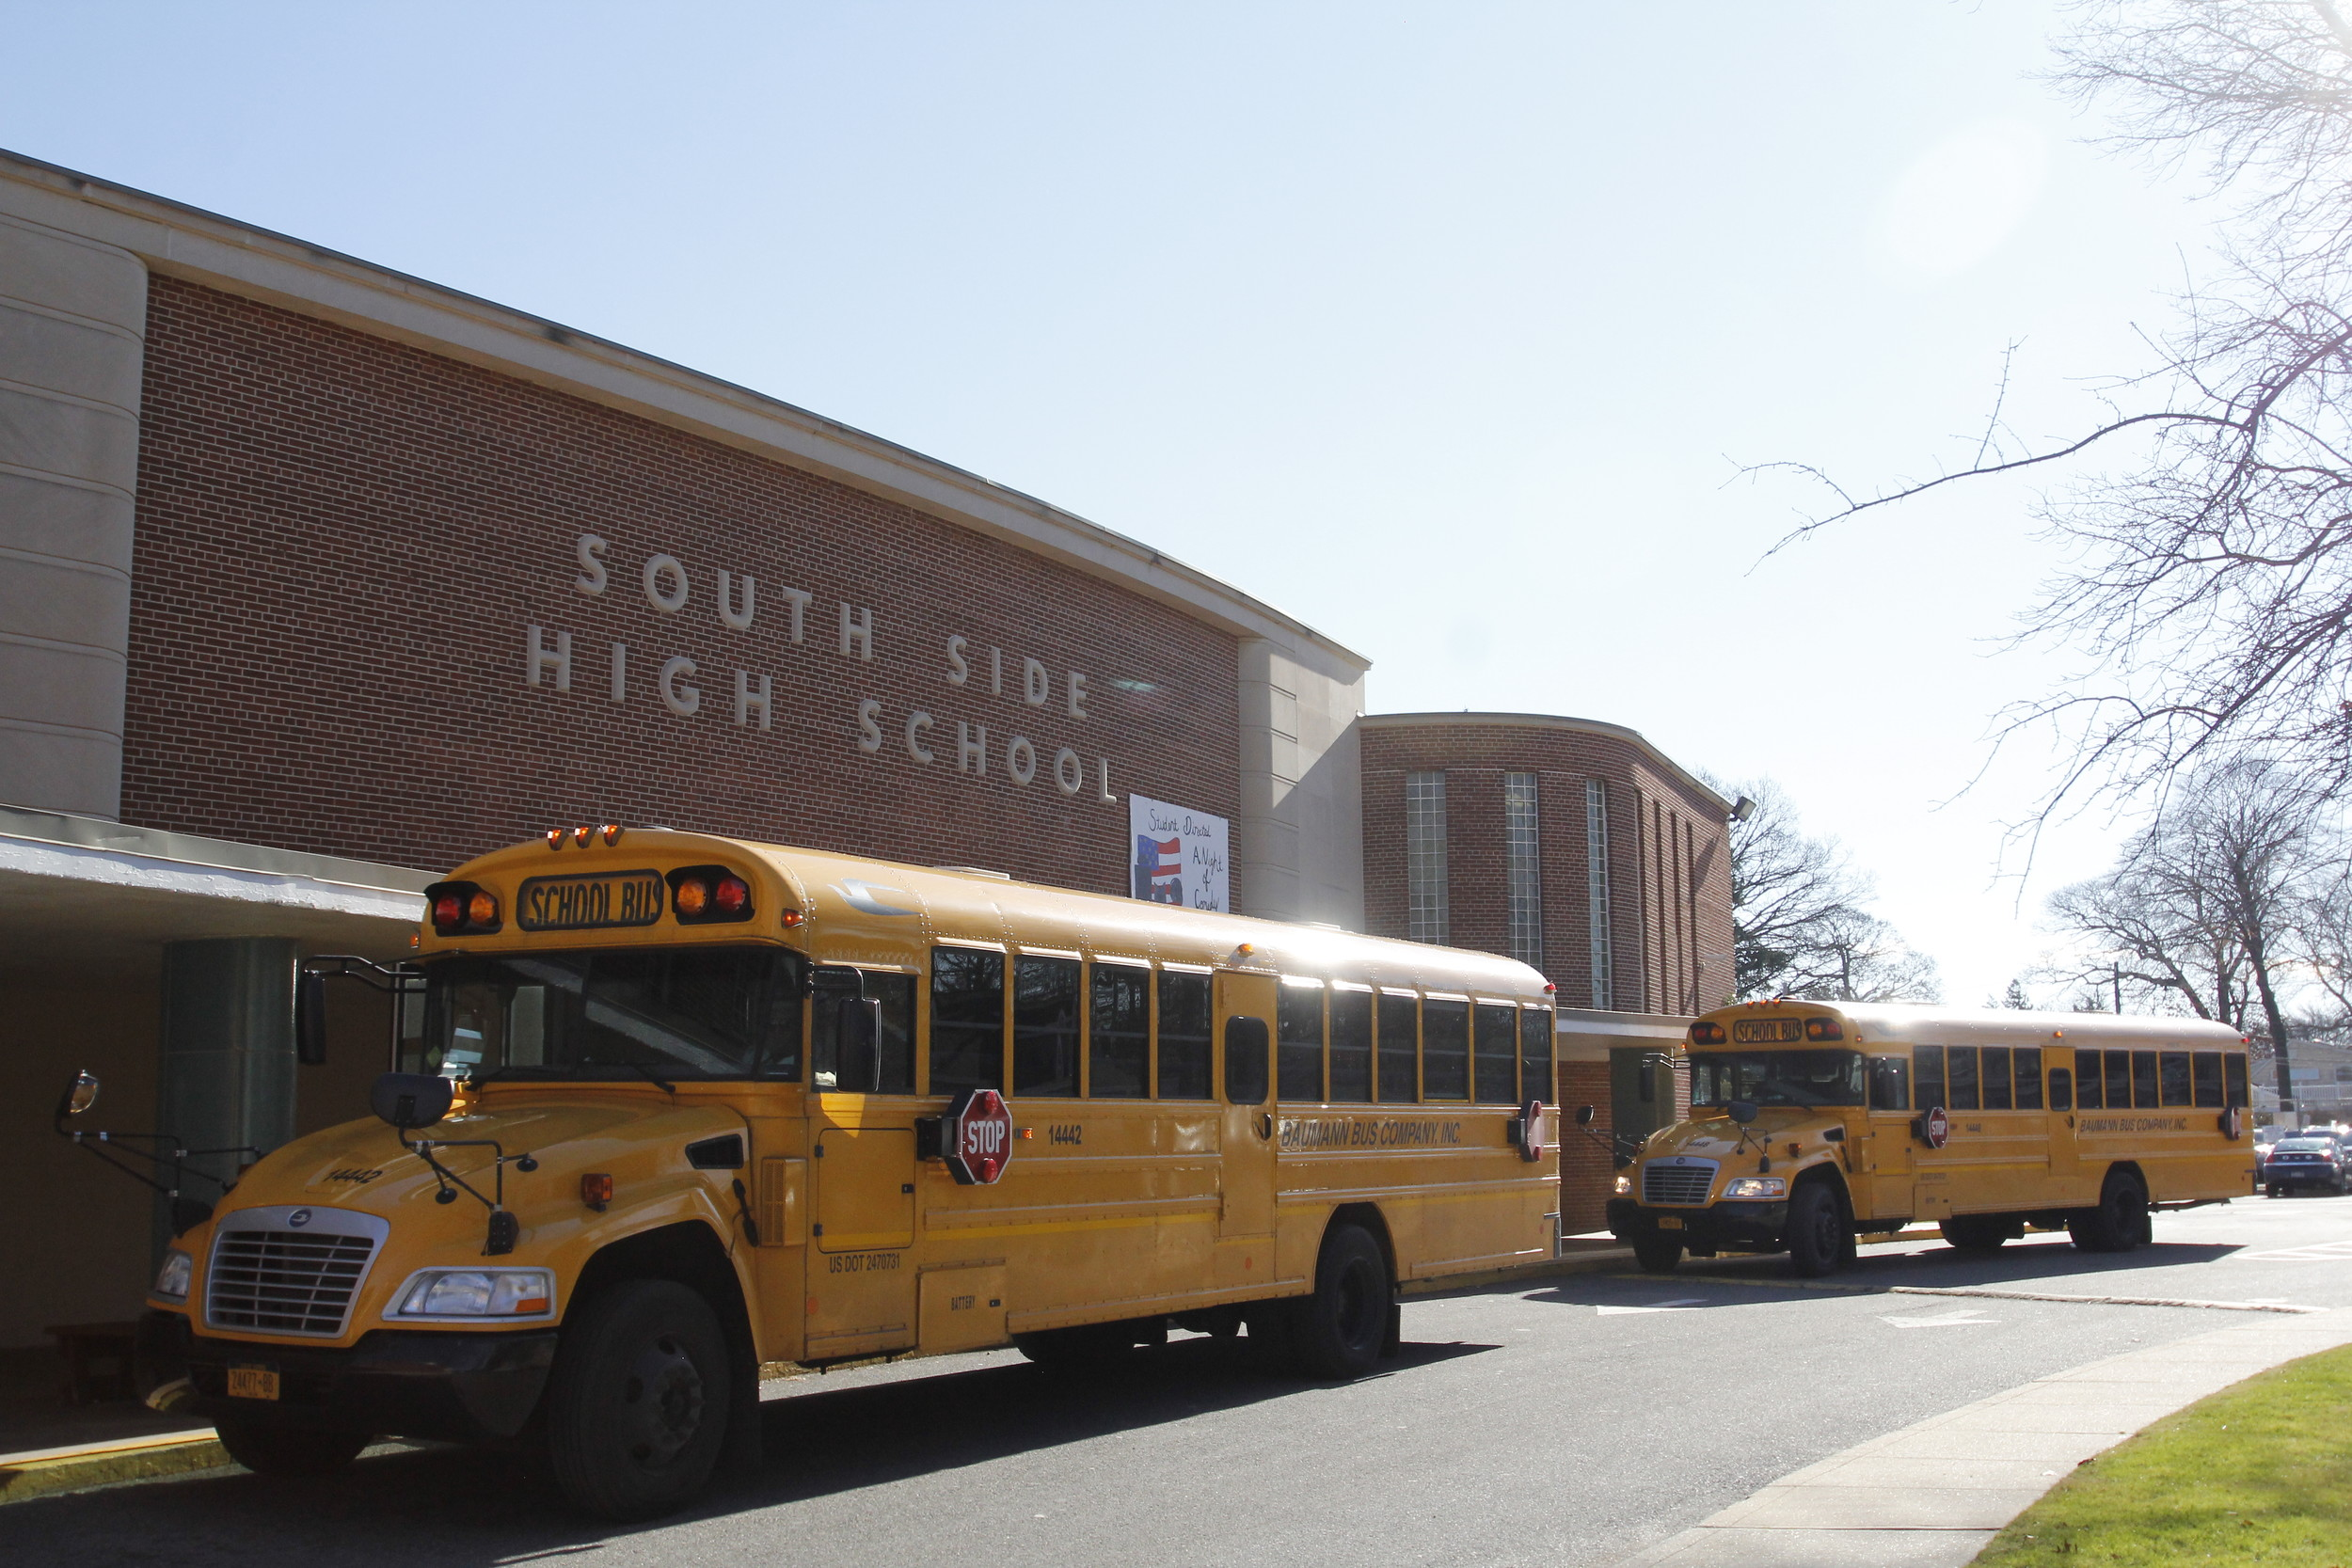 South Side High School was one of the 30 Long Island schools ranked in Niche.com's top 100 public high schools in New York.